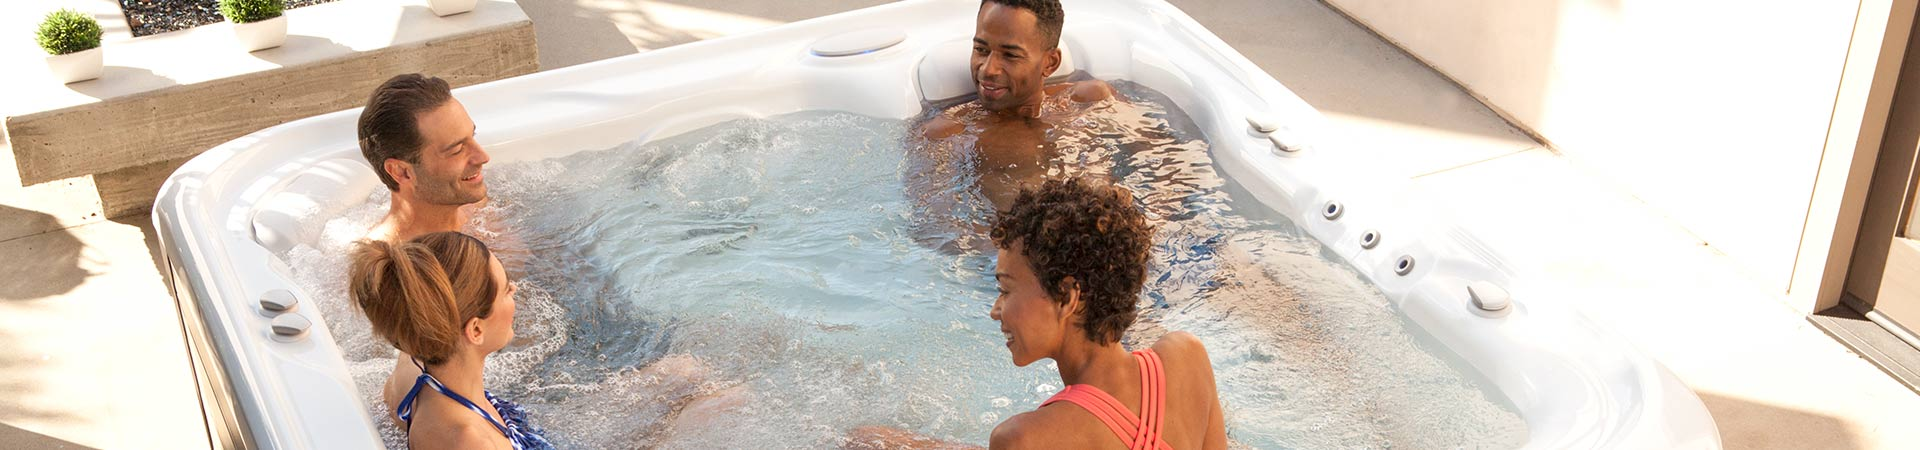 Salt Water Hot Tubs Dealer Des Moines, Participates in Stress Awareness Month